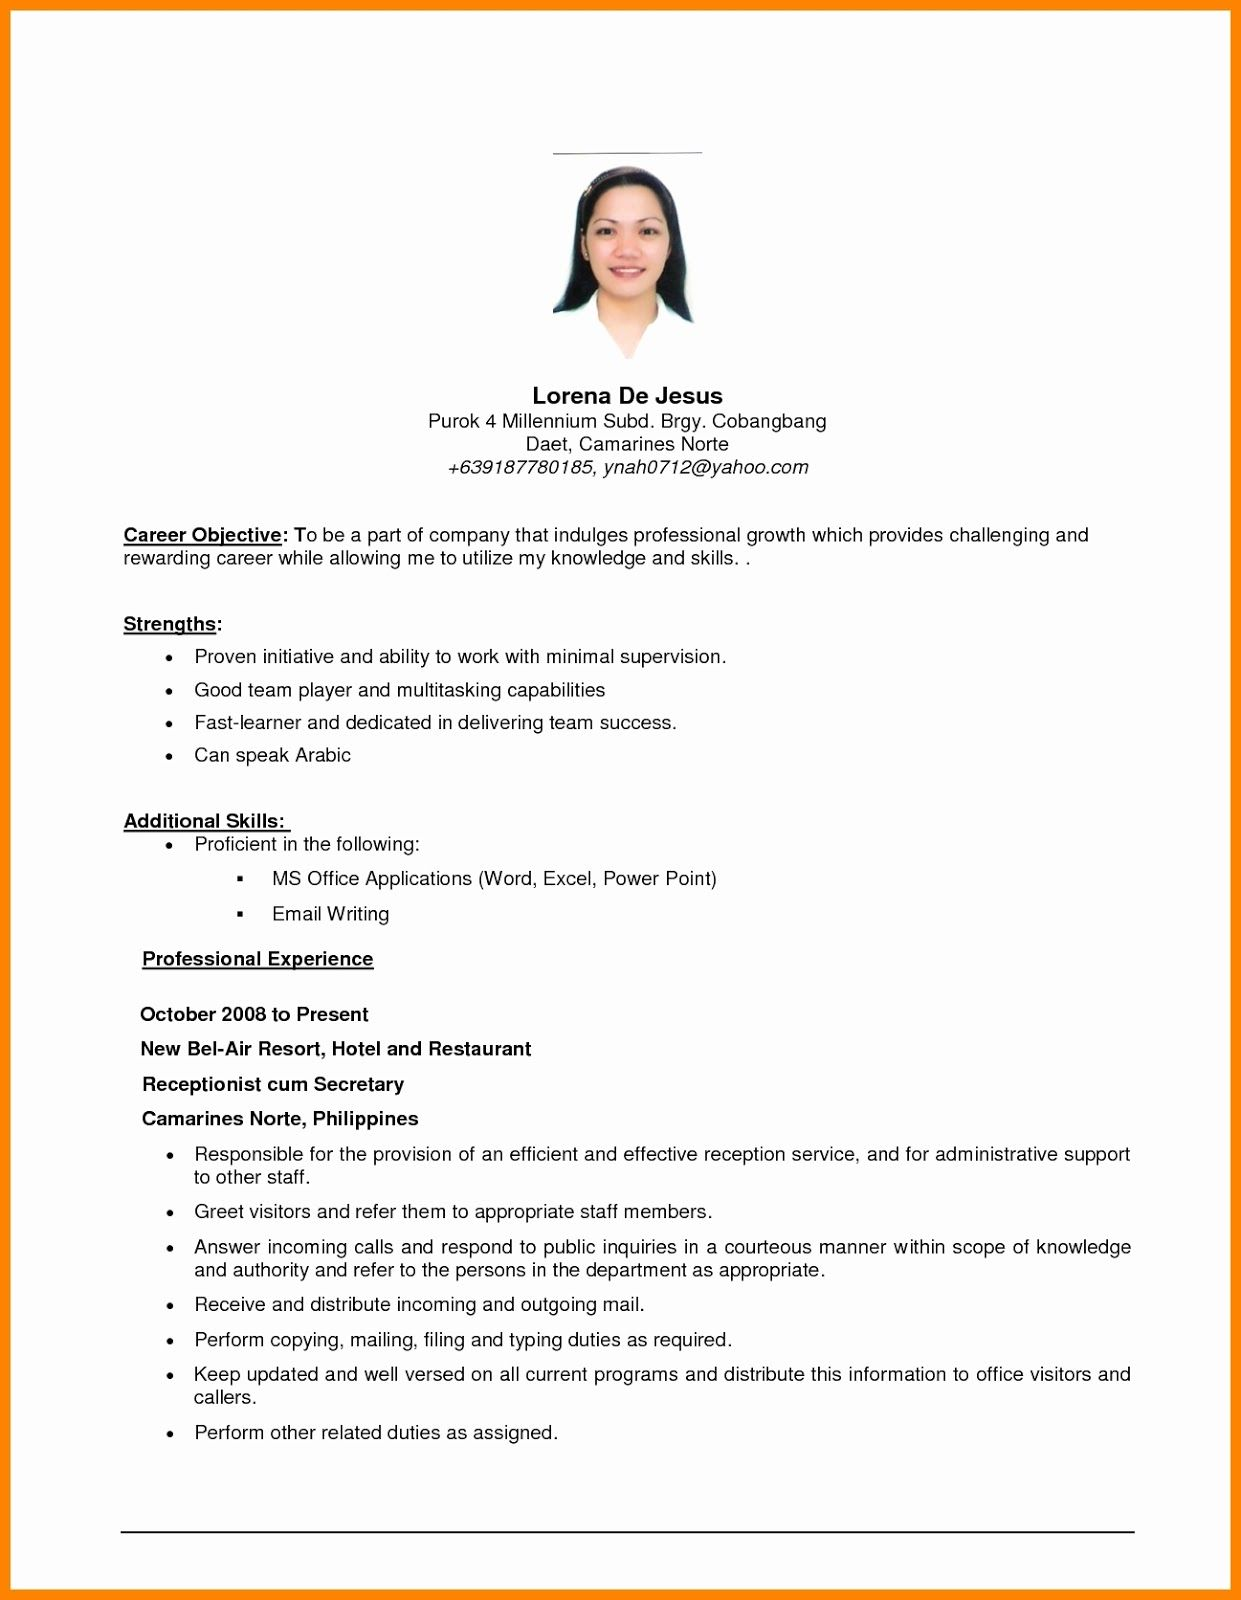 Caregiver Resume Samples Skills 2019 Caregiver Resume